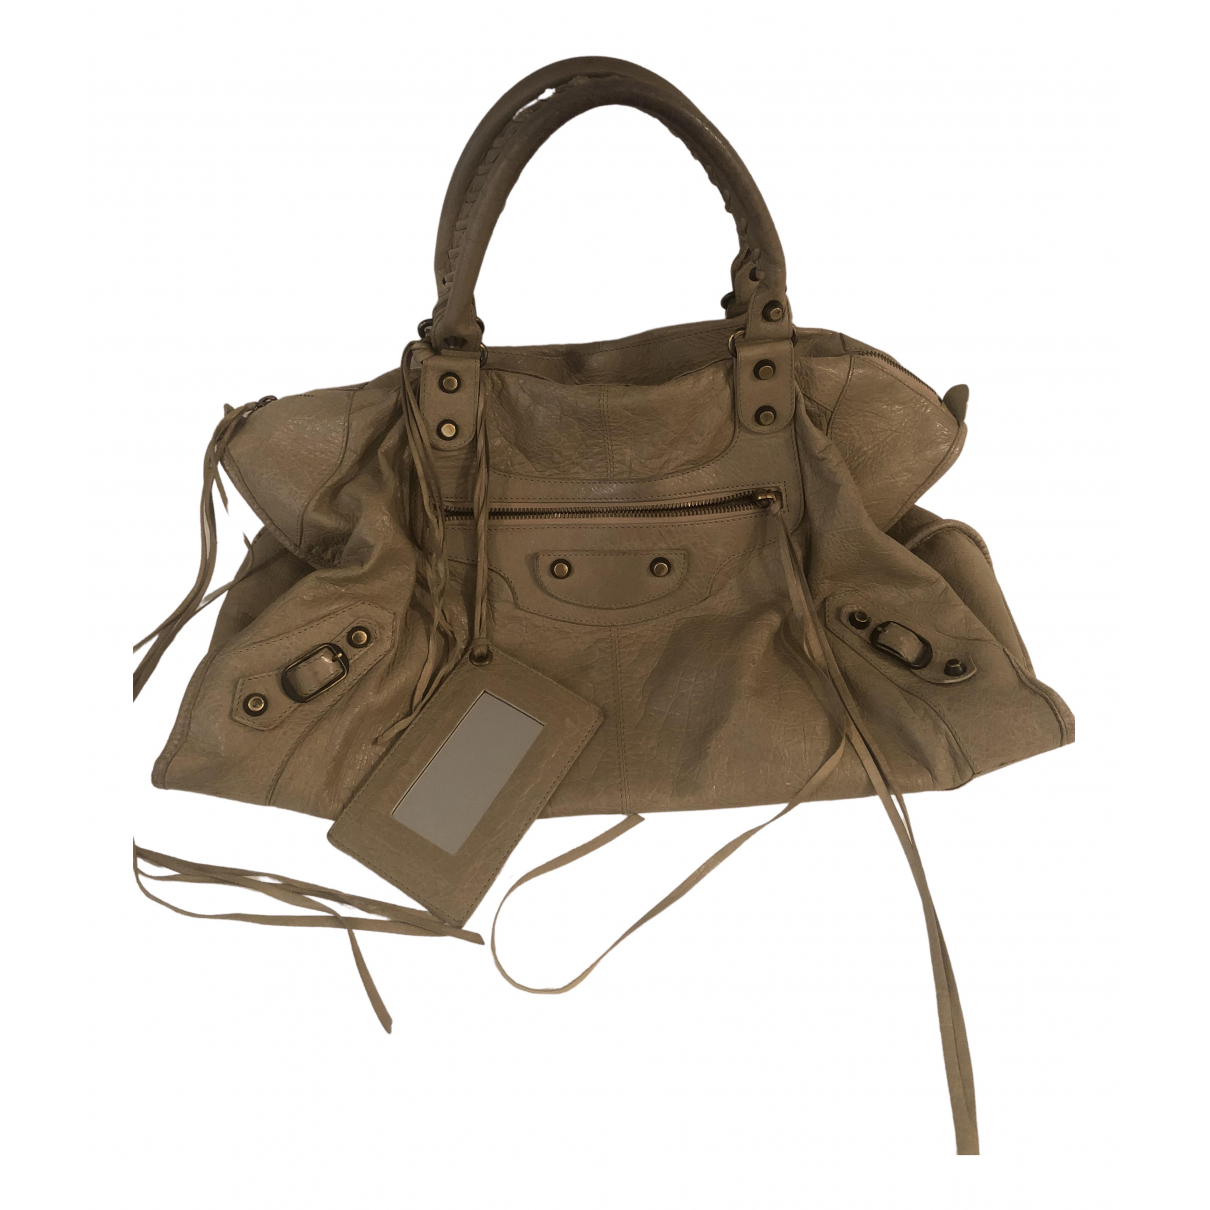 Balenciaga City Beige Leather handbag for Women \N